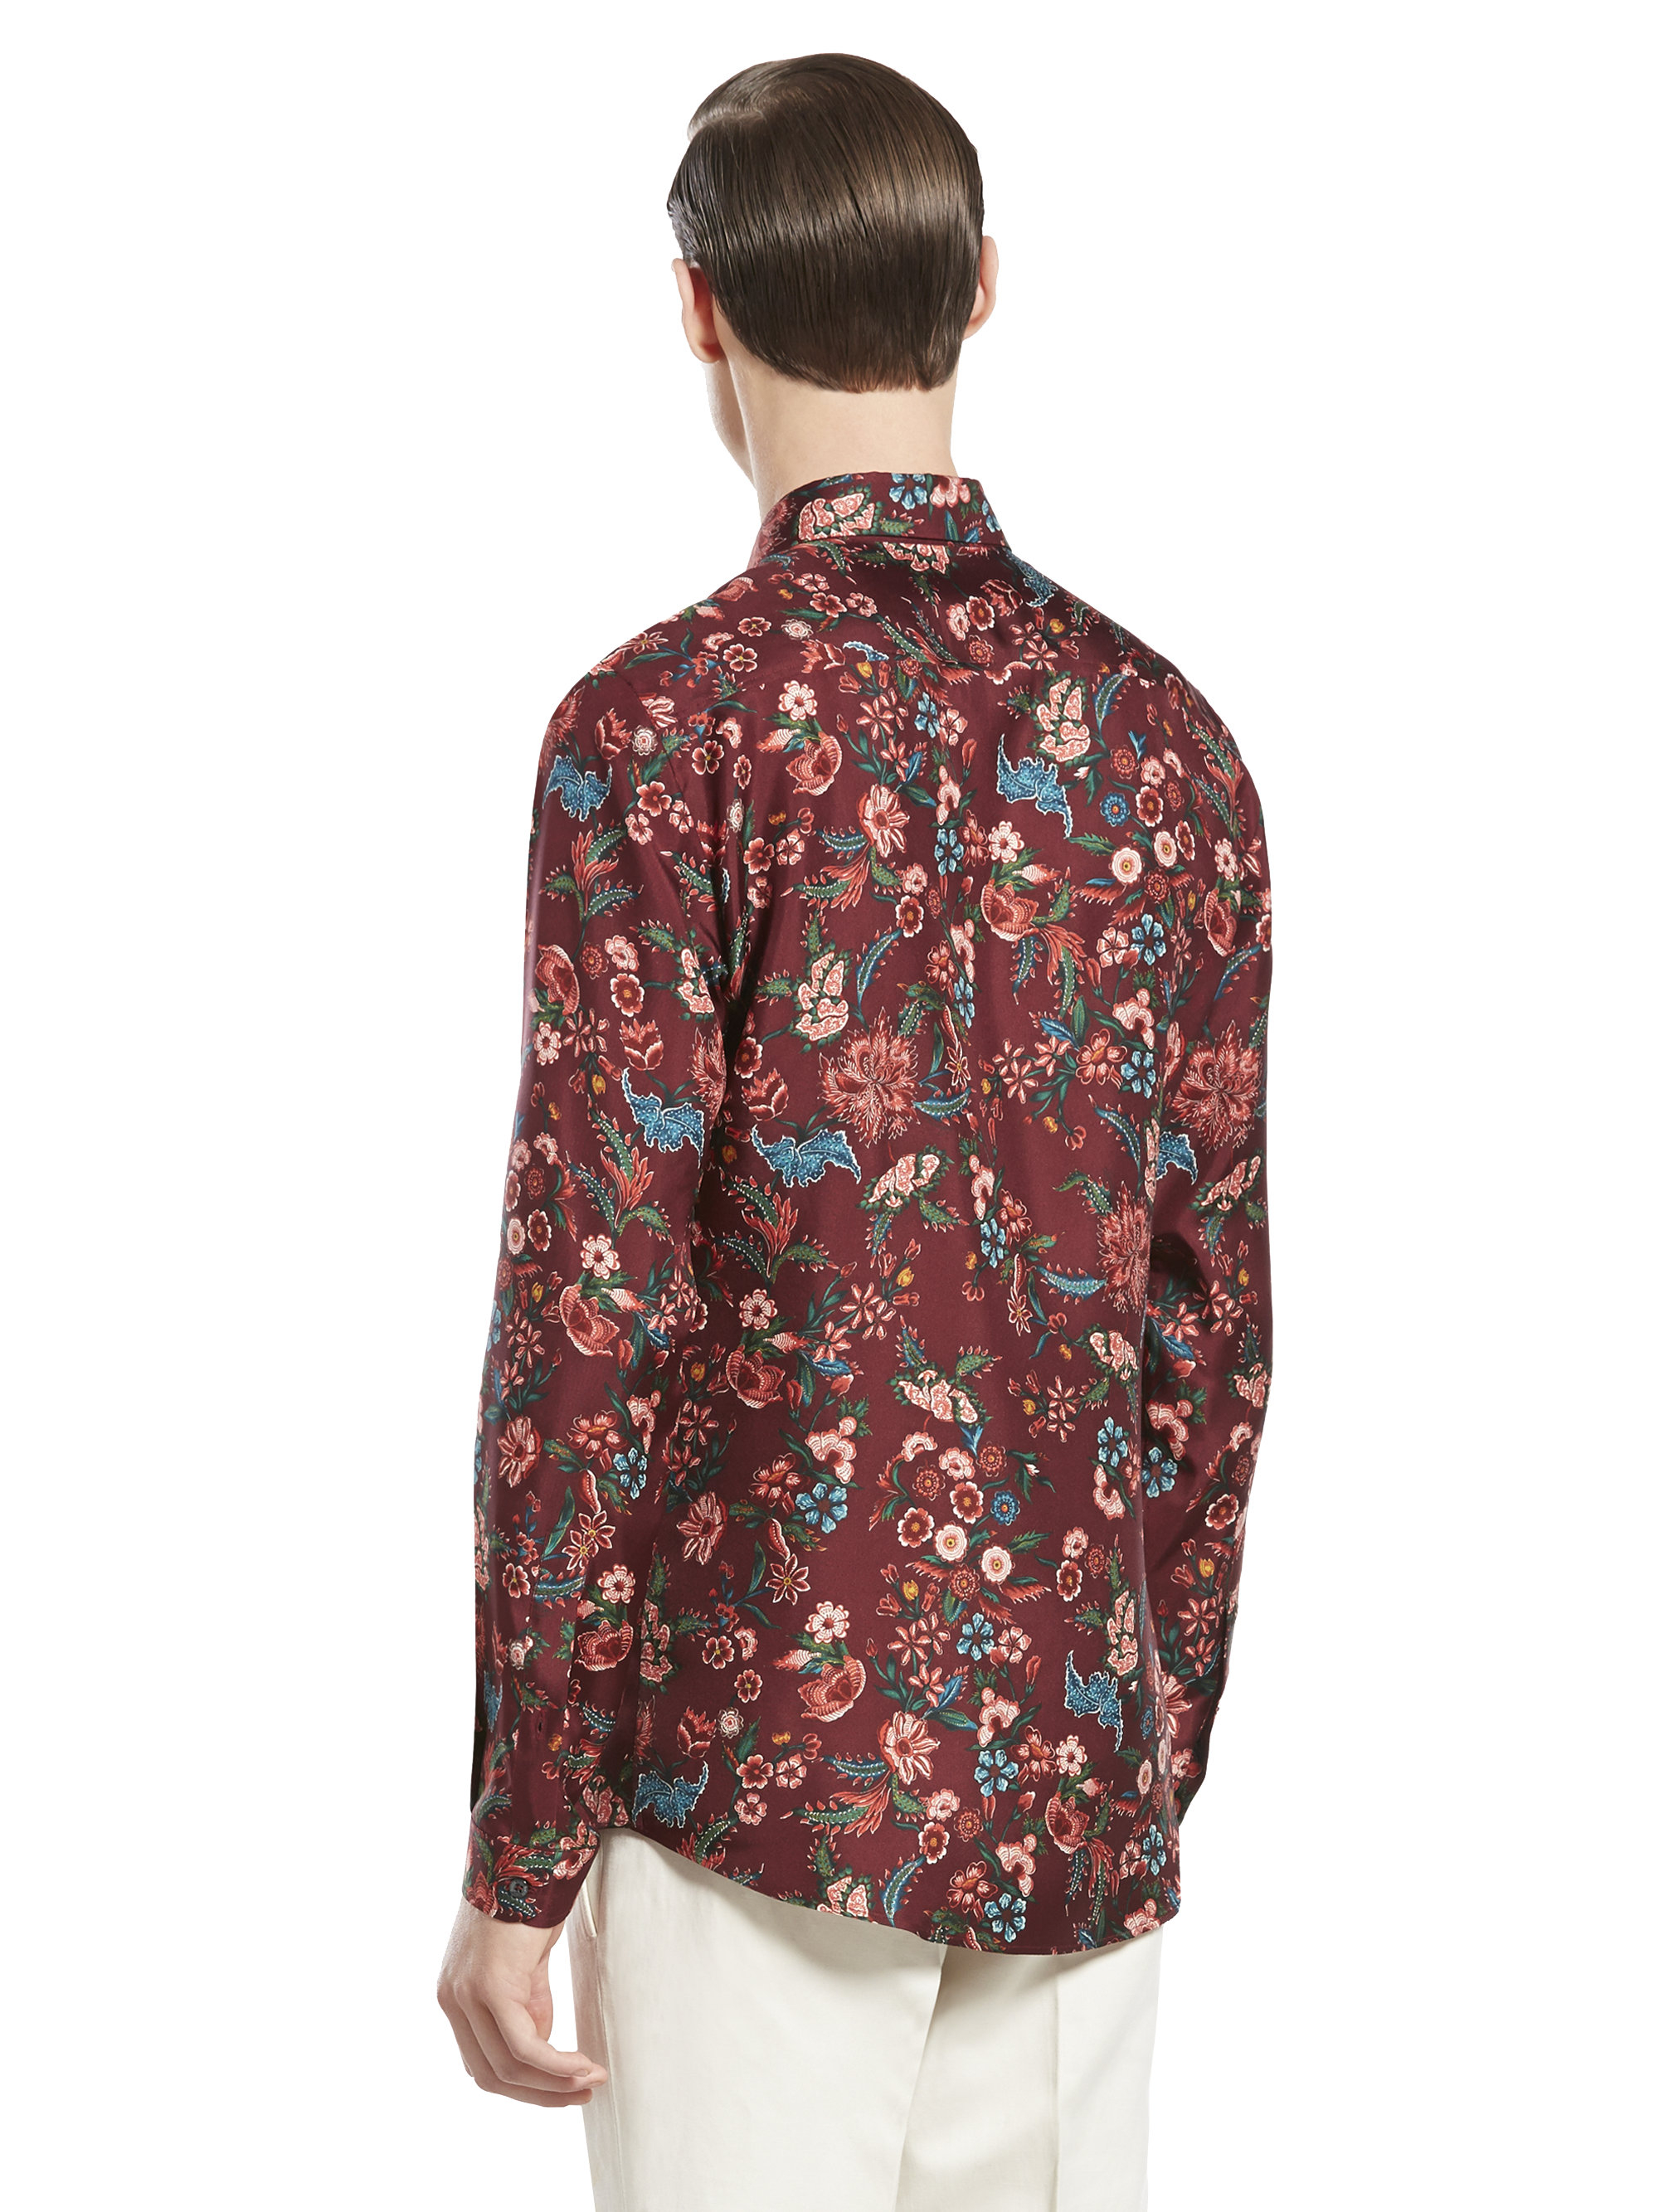 42af9047872c Gucci Floral Pattern Woven Shirt in Red for Men - Lyst